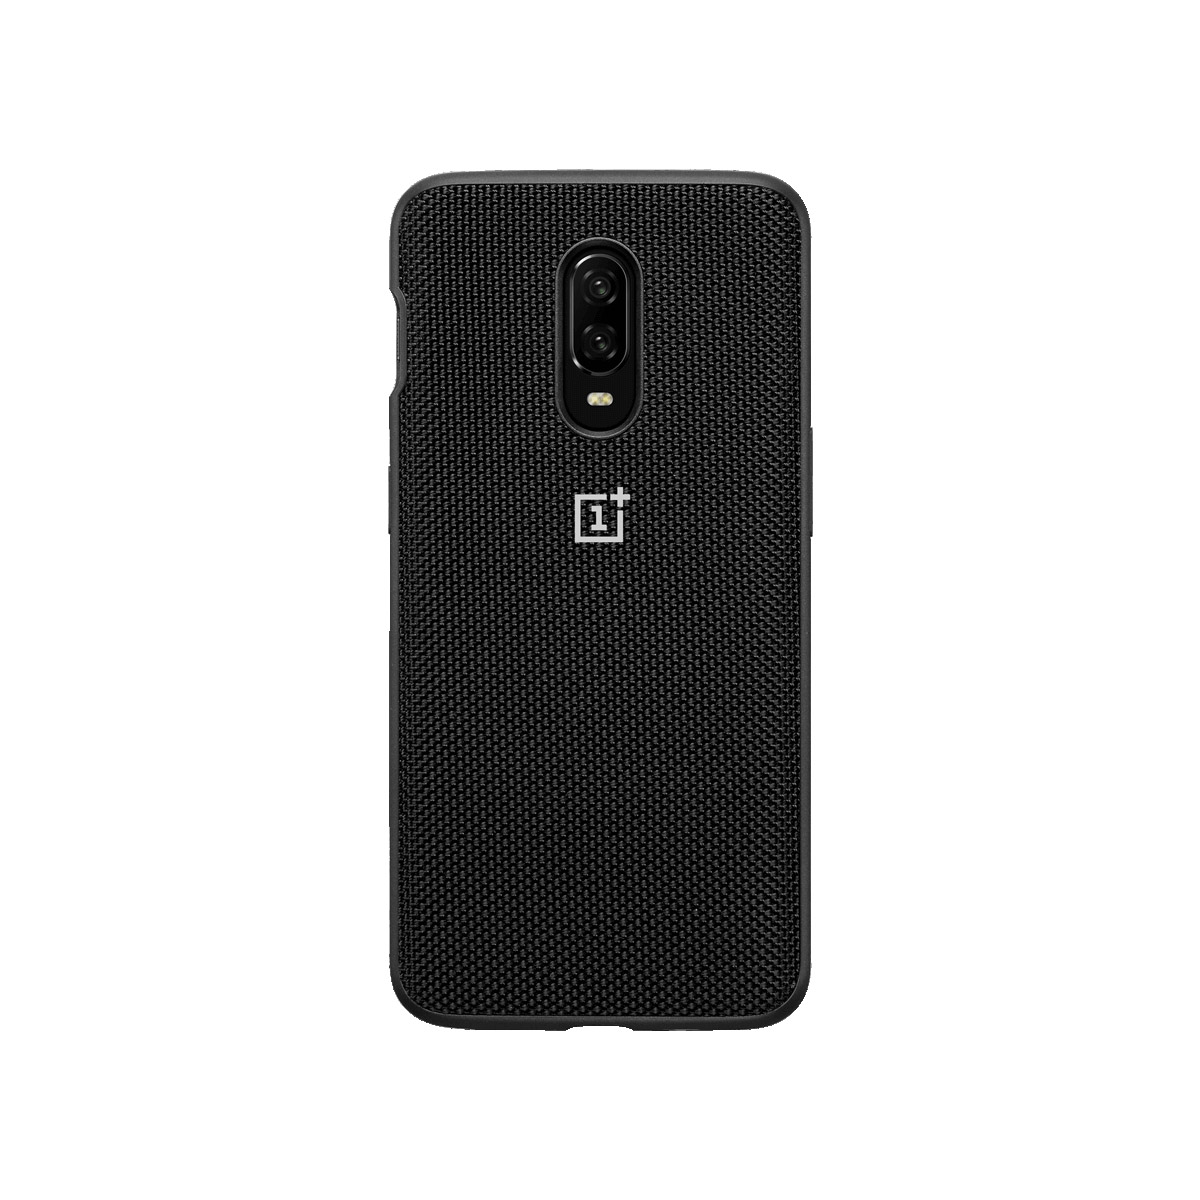 Image 4 - A6013 Official OnePlus 6t Case original 1+6T OnePlus 6 bespoke Silicone Sandstone Nylon Karbon Bumper Leather Flip Cover-in Fitted Cases from Cellphones & Telecommunications